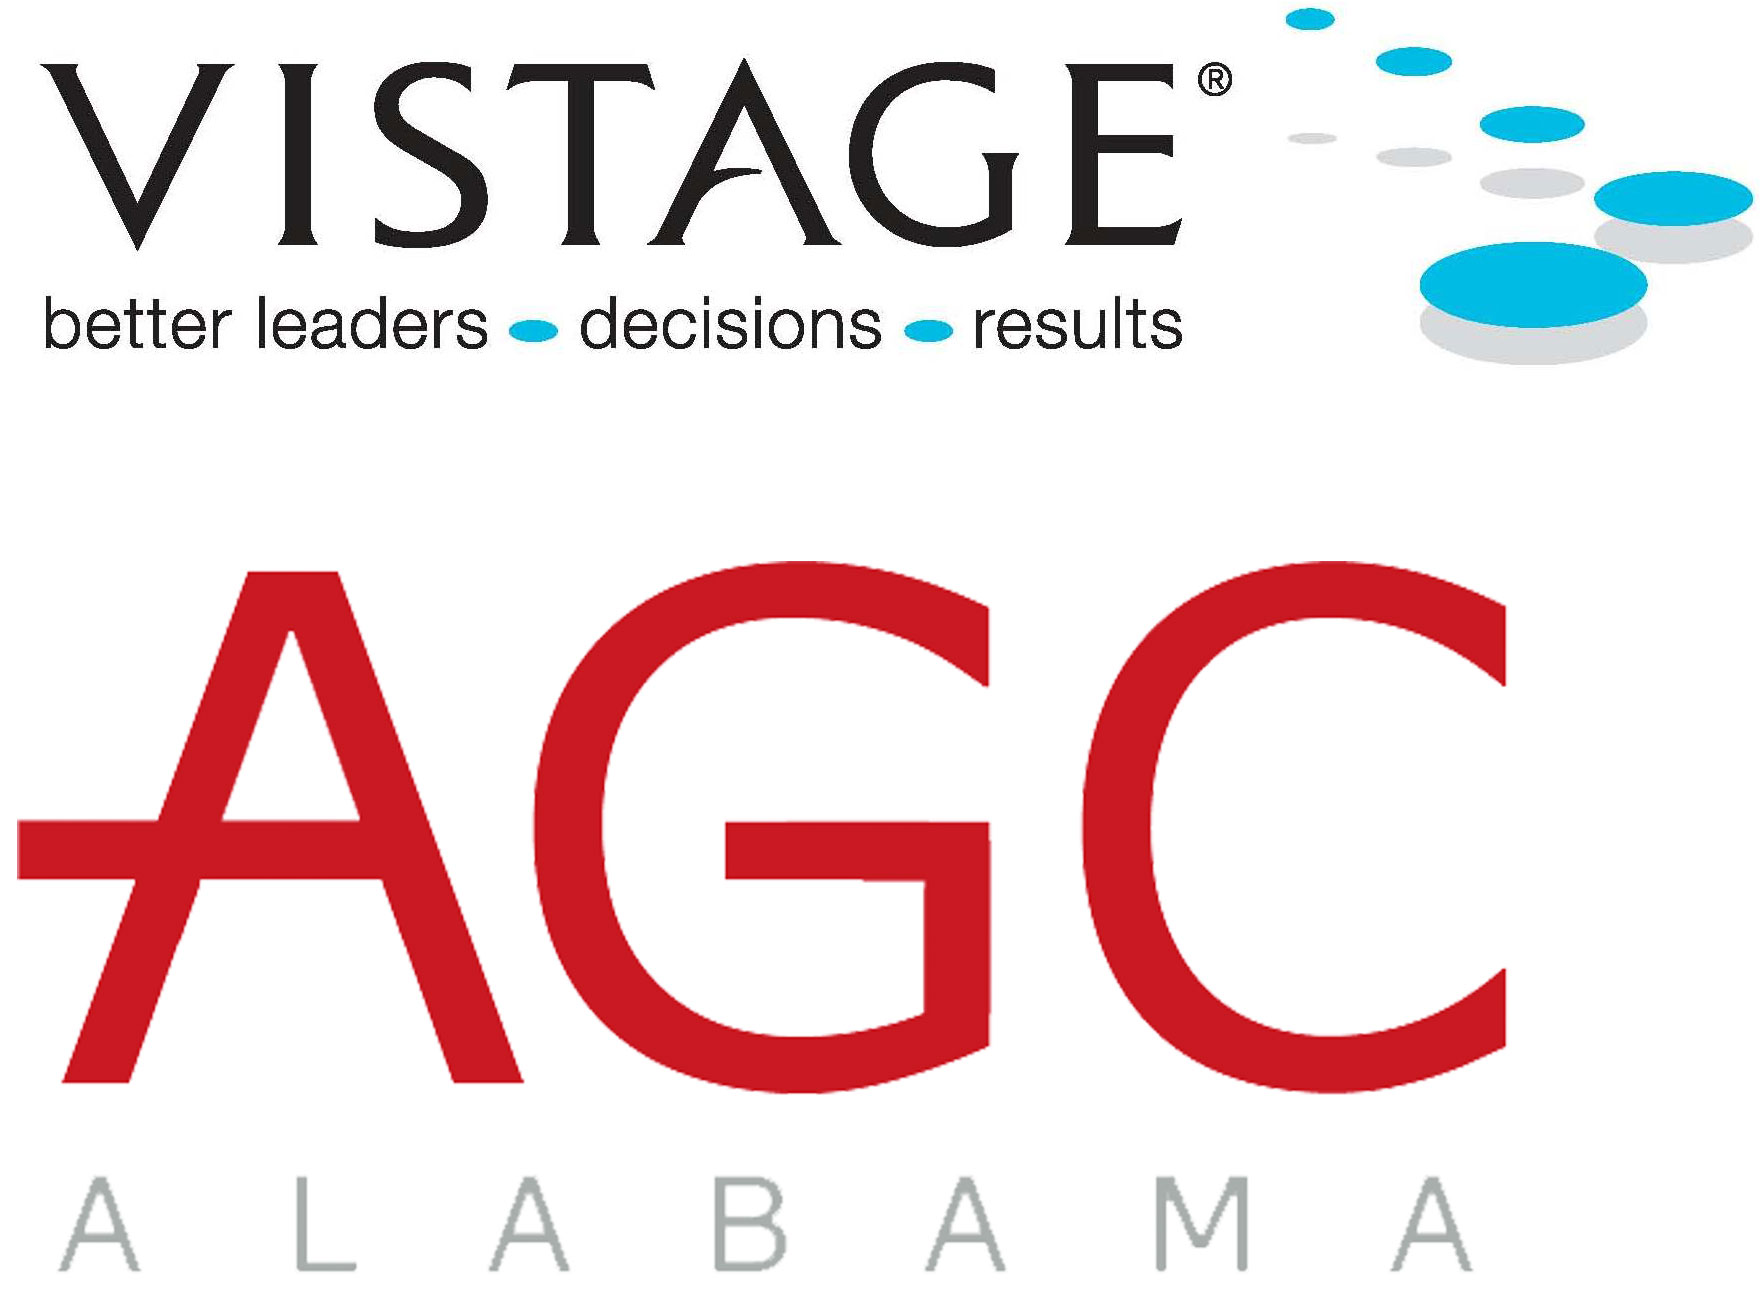 construction Panama City Beach - general contracting firms, construction management firms for commercial buidling projects - VISTAGE, AGC